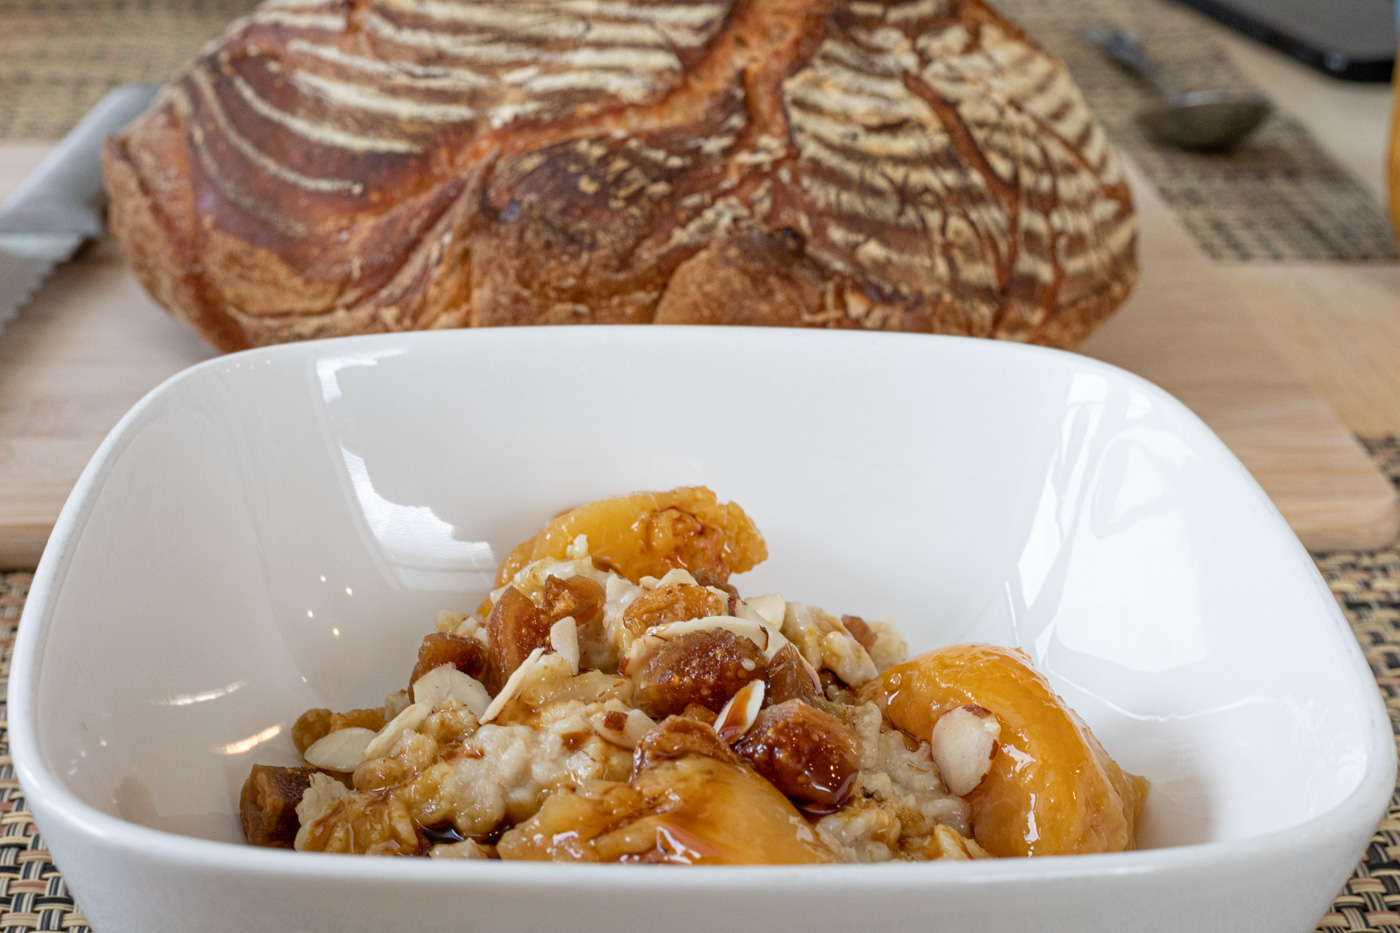 Oatmeal with Home-Canned Peaches, Dried Figs, Raisins, Almonds